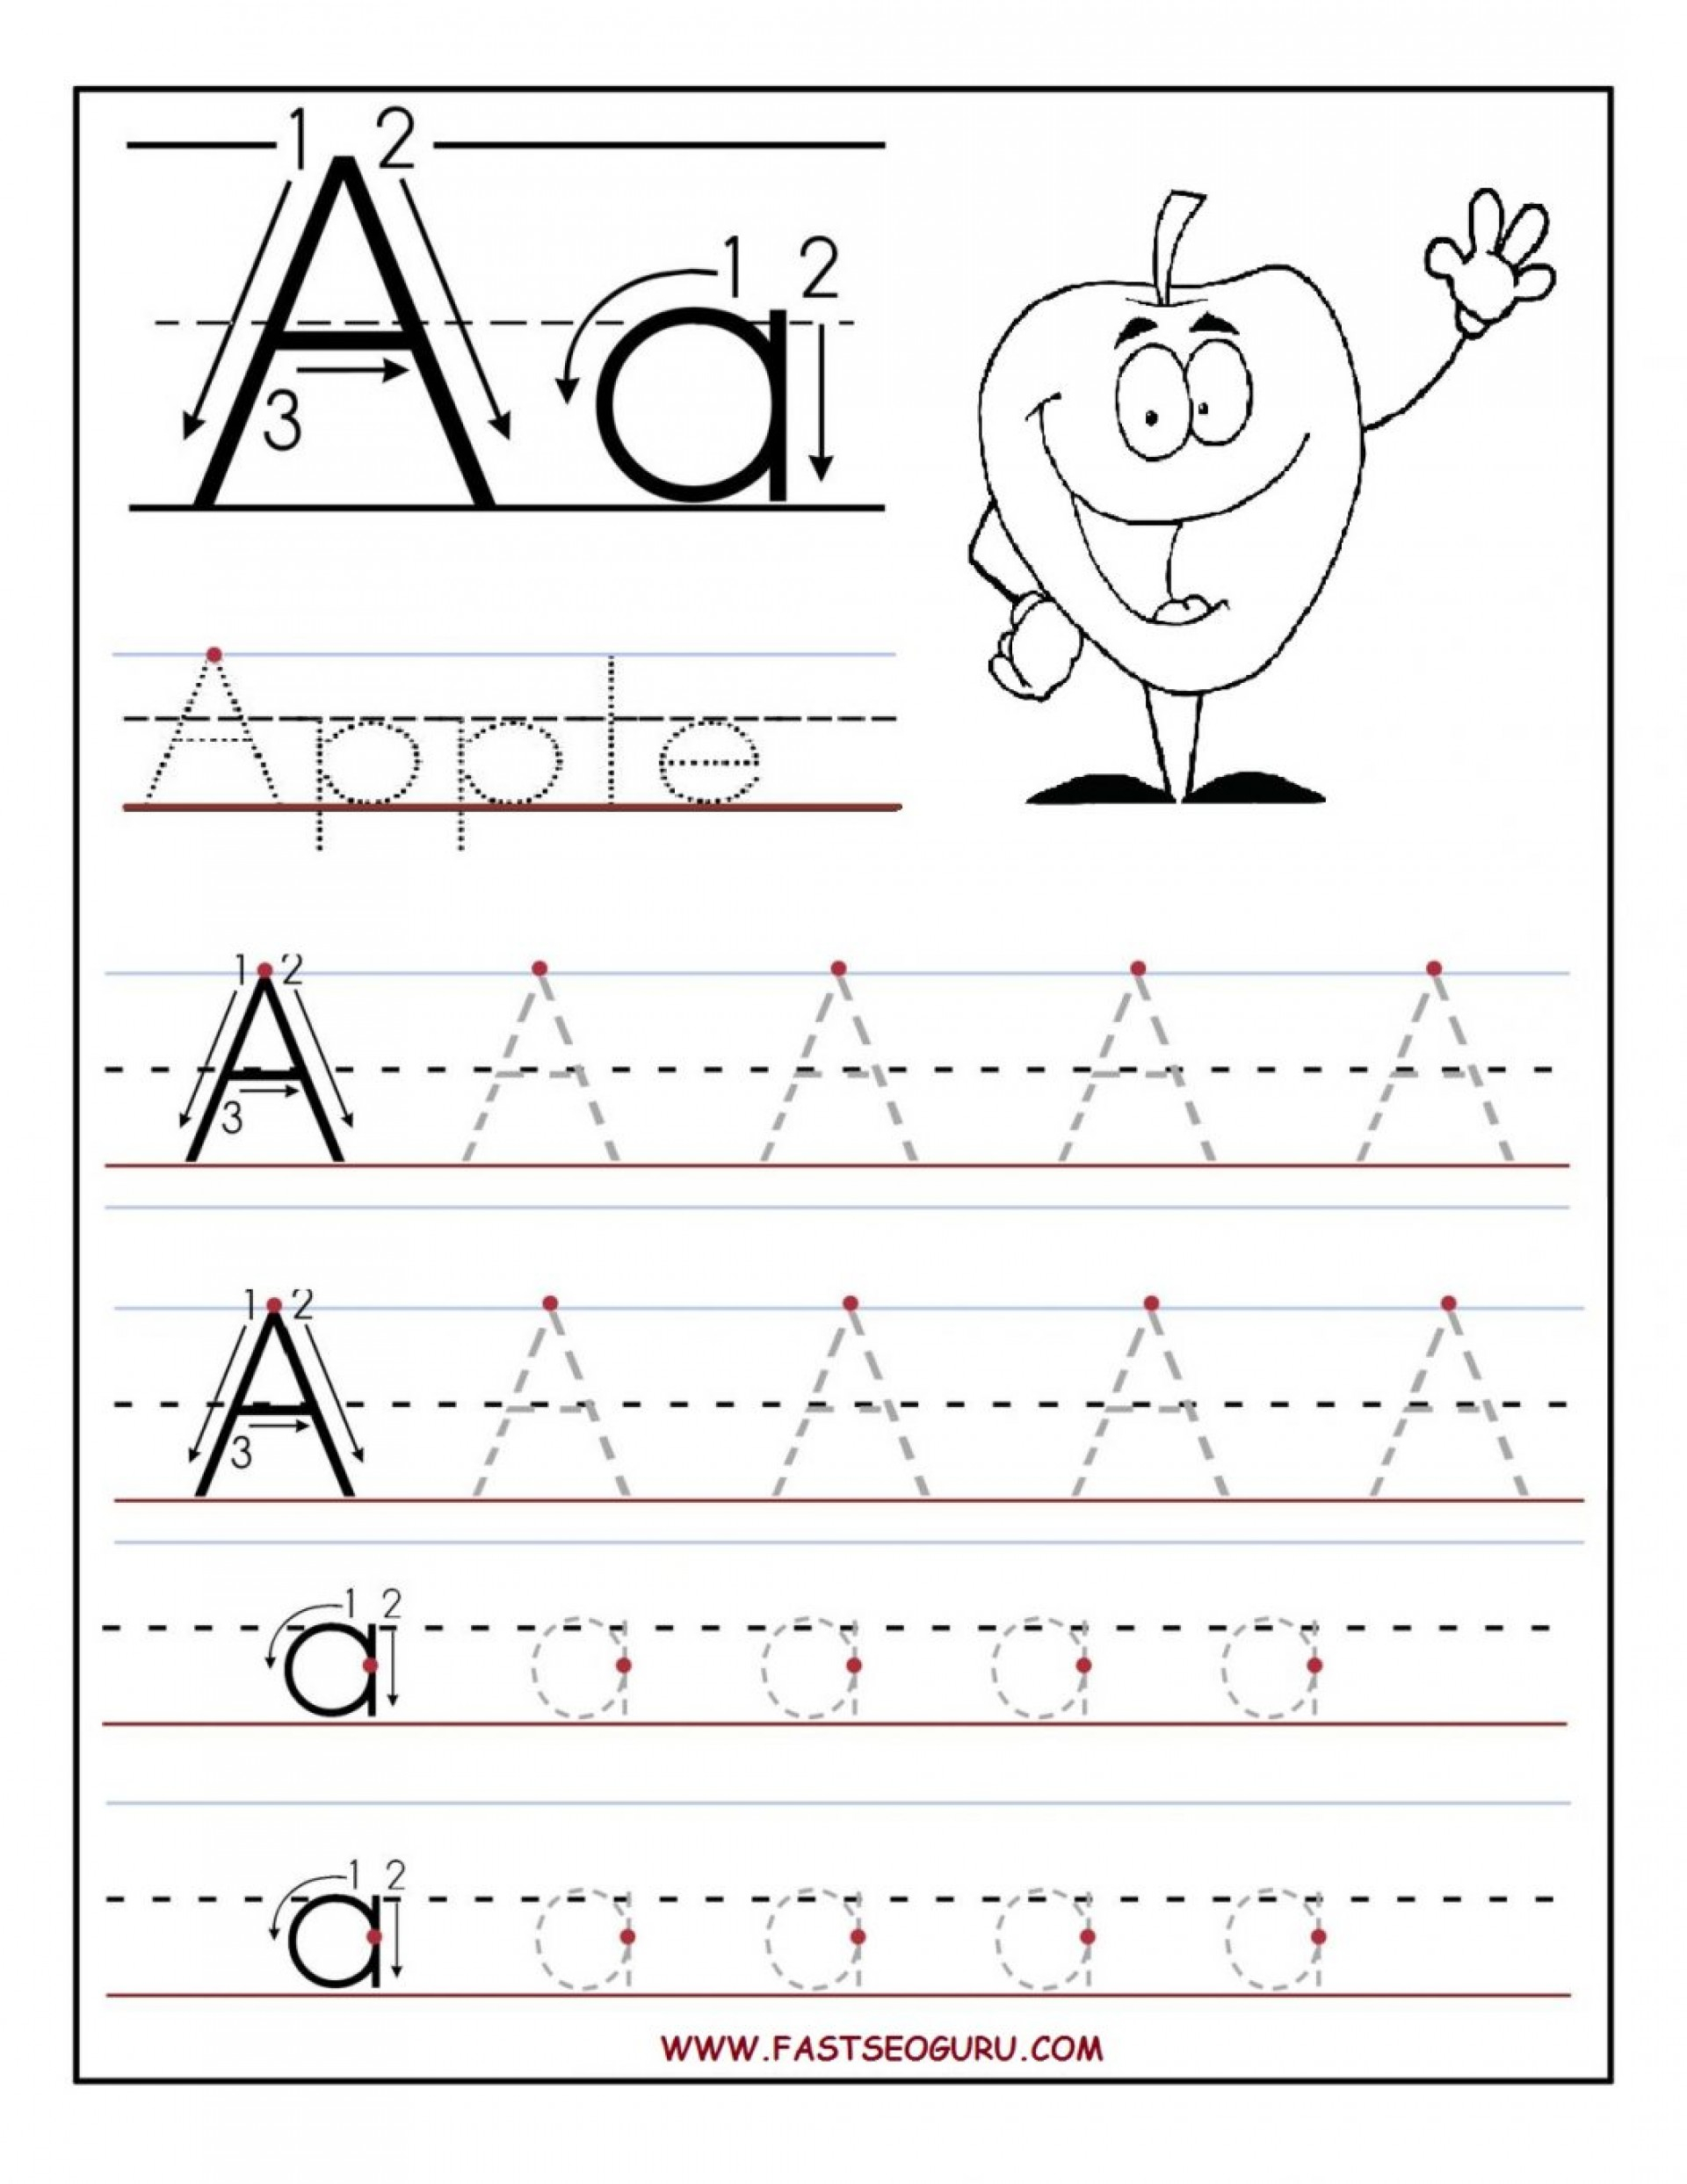 Worksheet Trace Letters Tracing Worksheets For Astounding with Letter S Tracing Printable